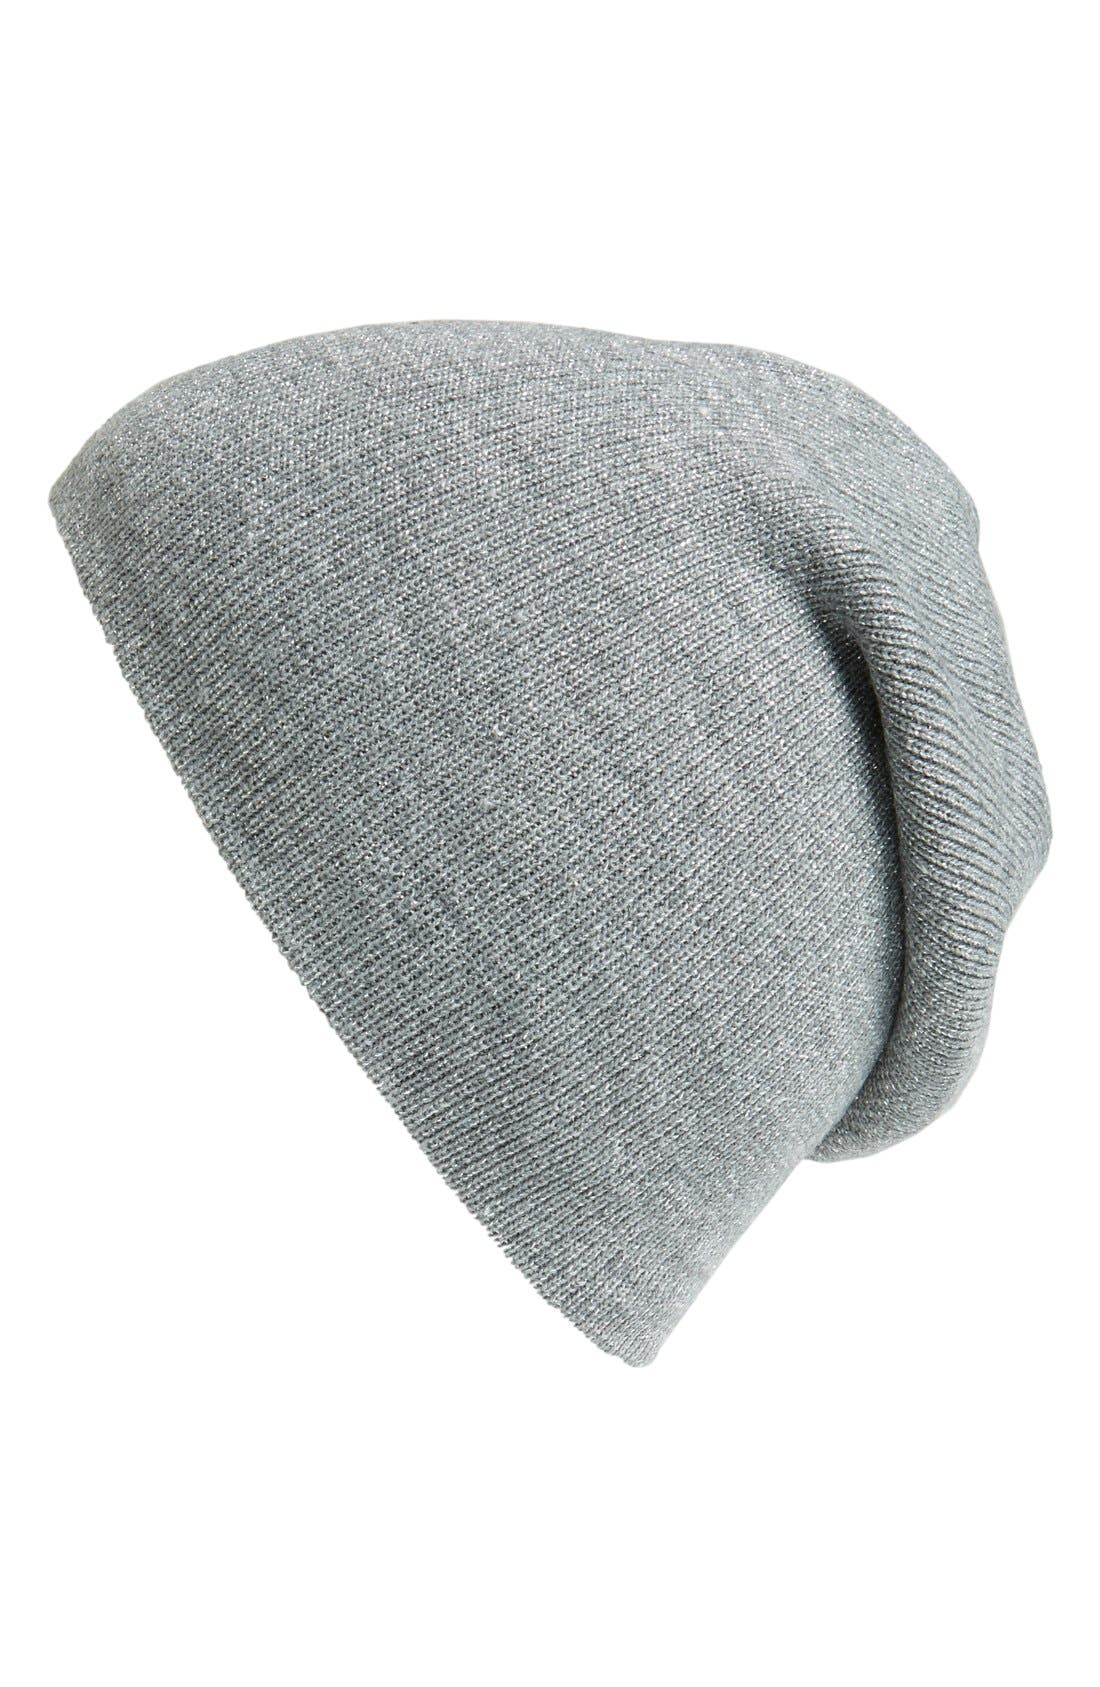 Alternate Image 2  - Phase 3 'Stand Up' Sparkle Beanie